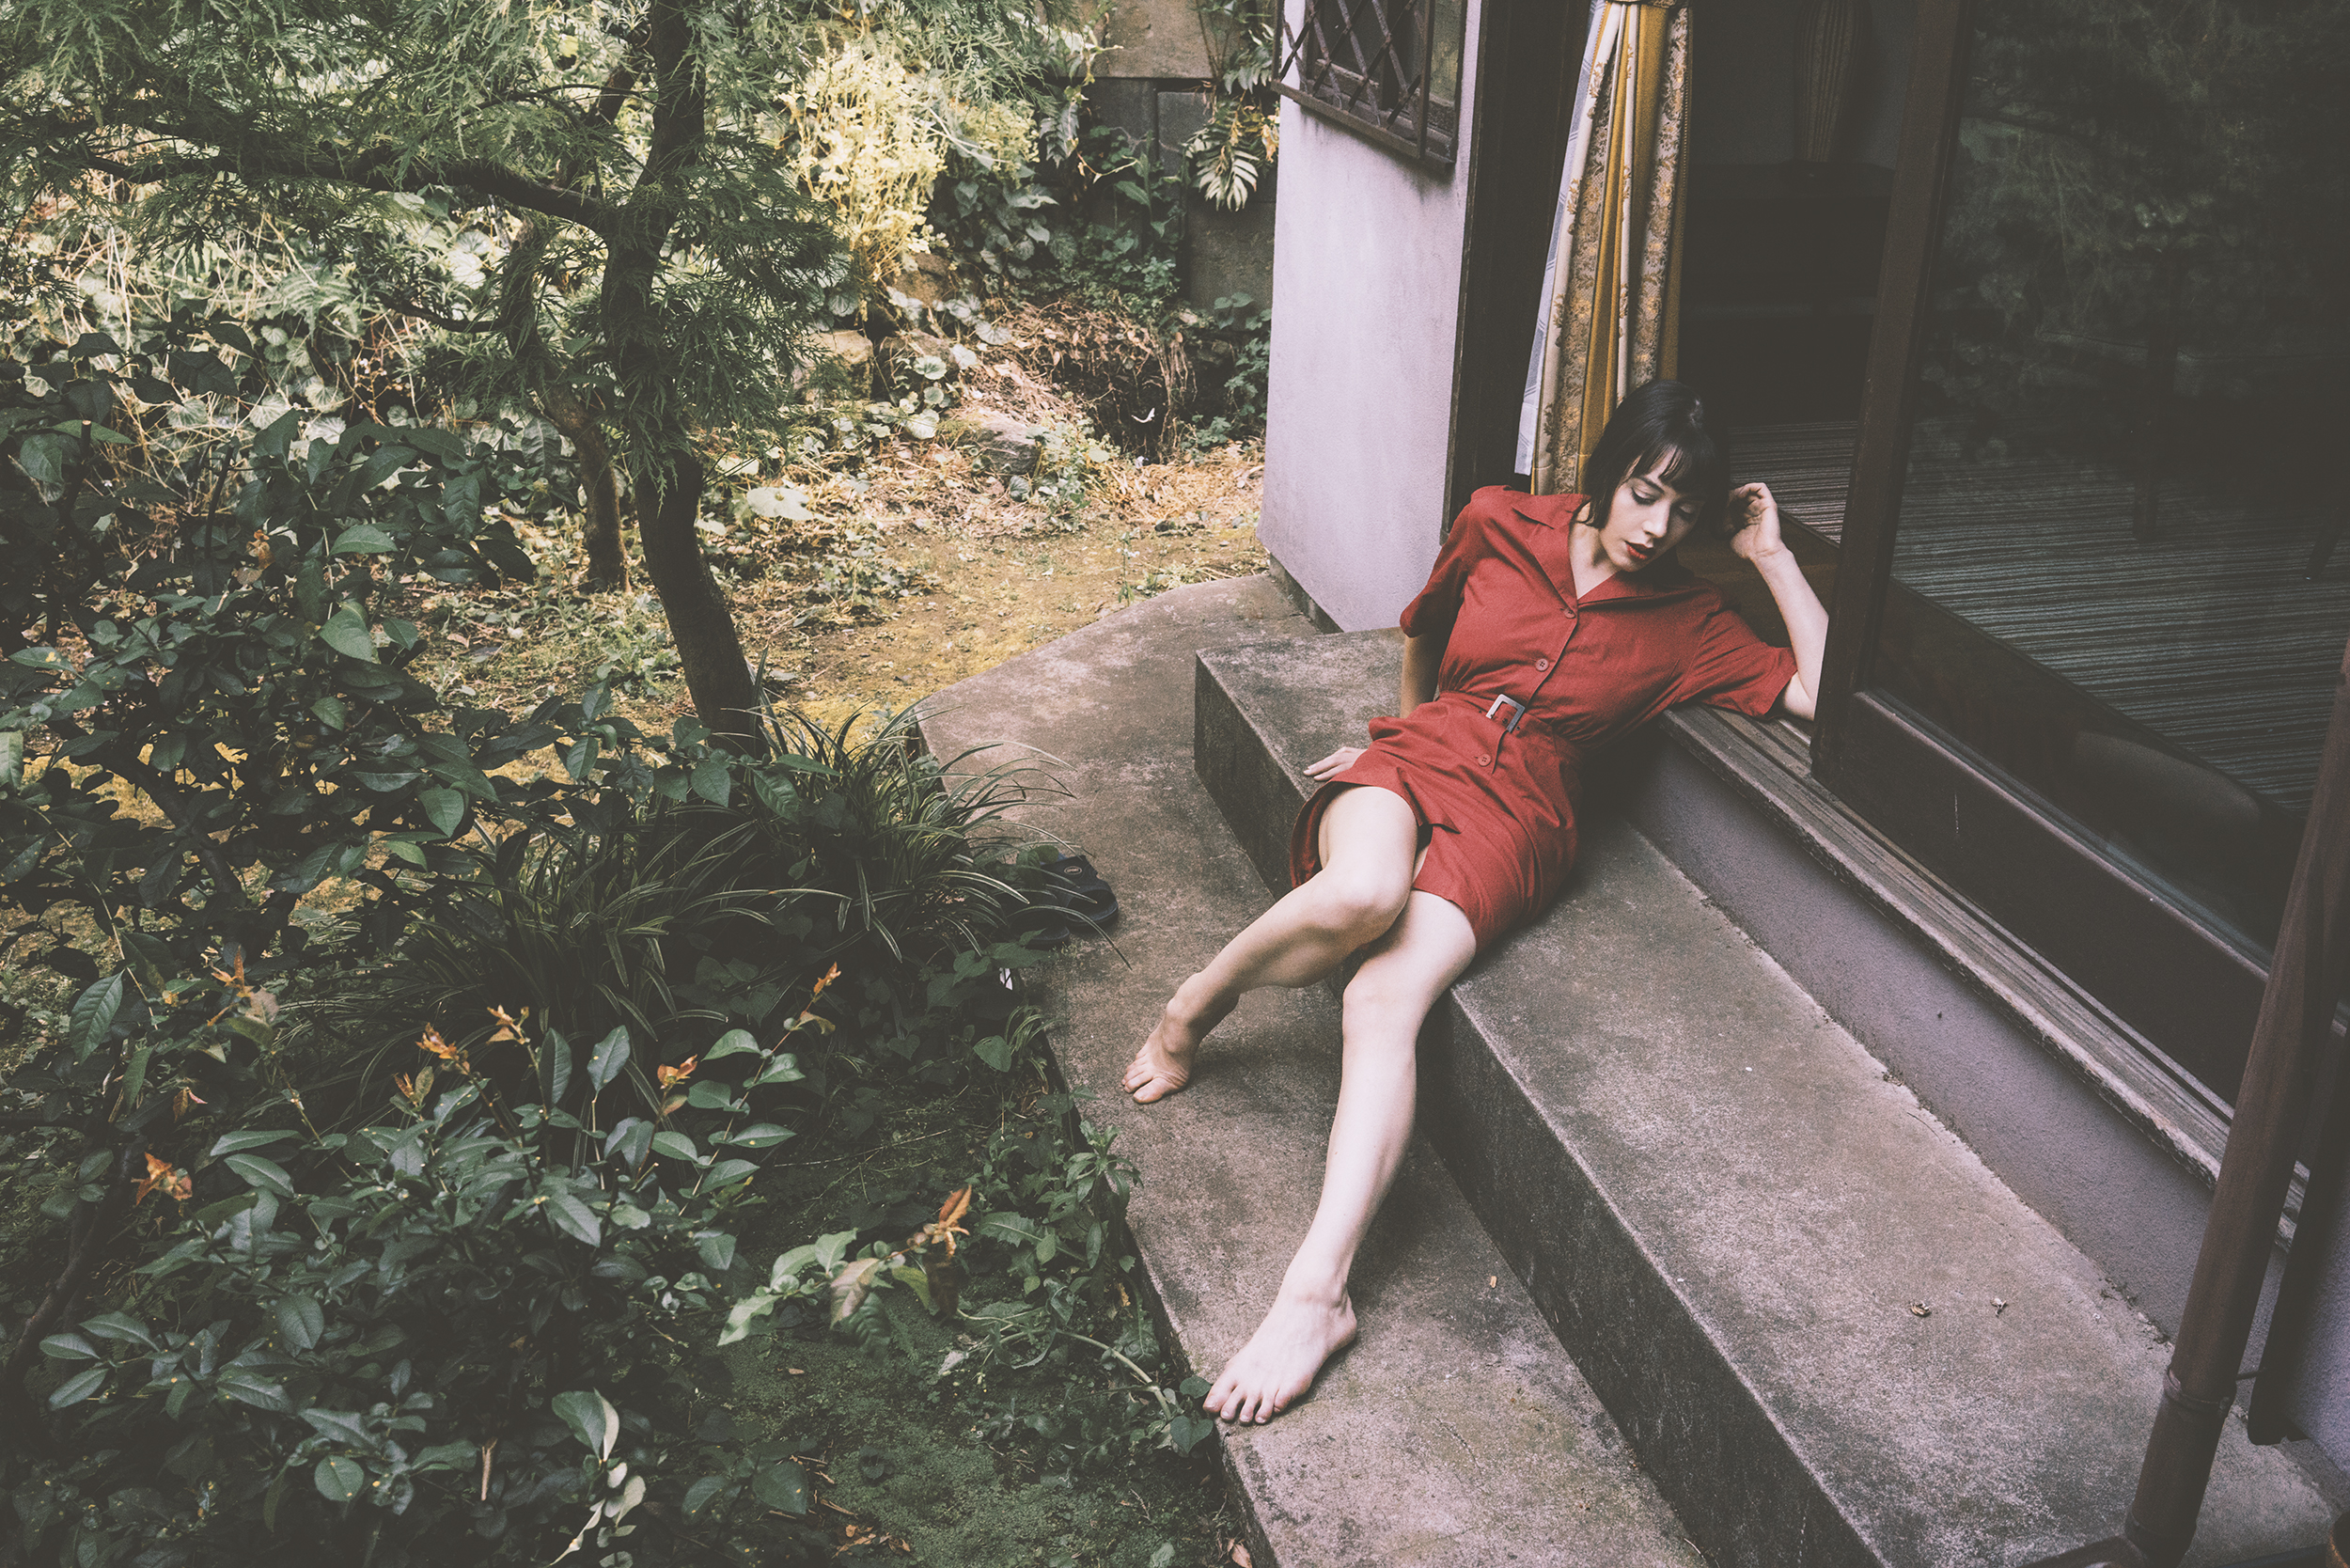 Gestalta photographed by Shuji Kobayashi. Girl in a red dress reclines in a Japanese garden